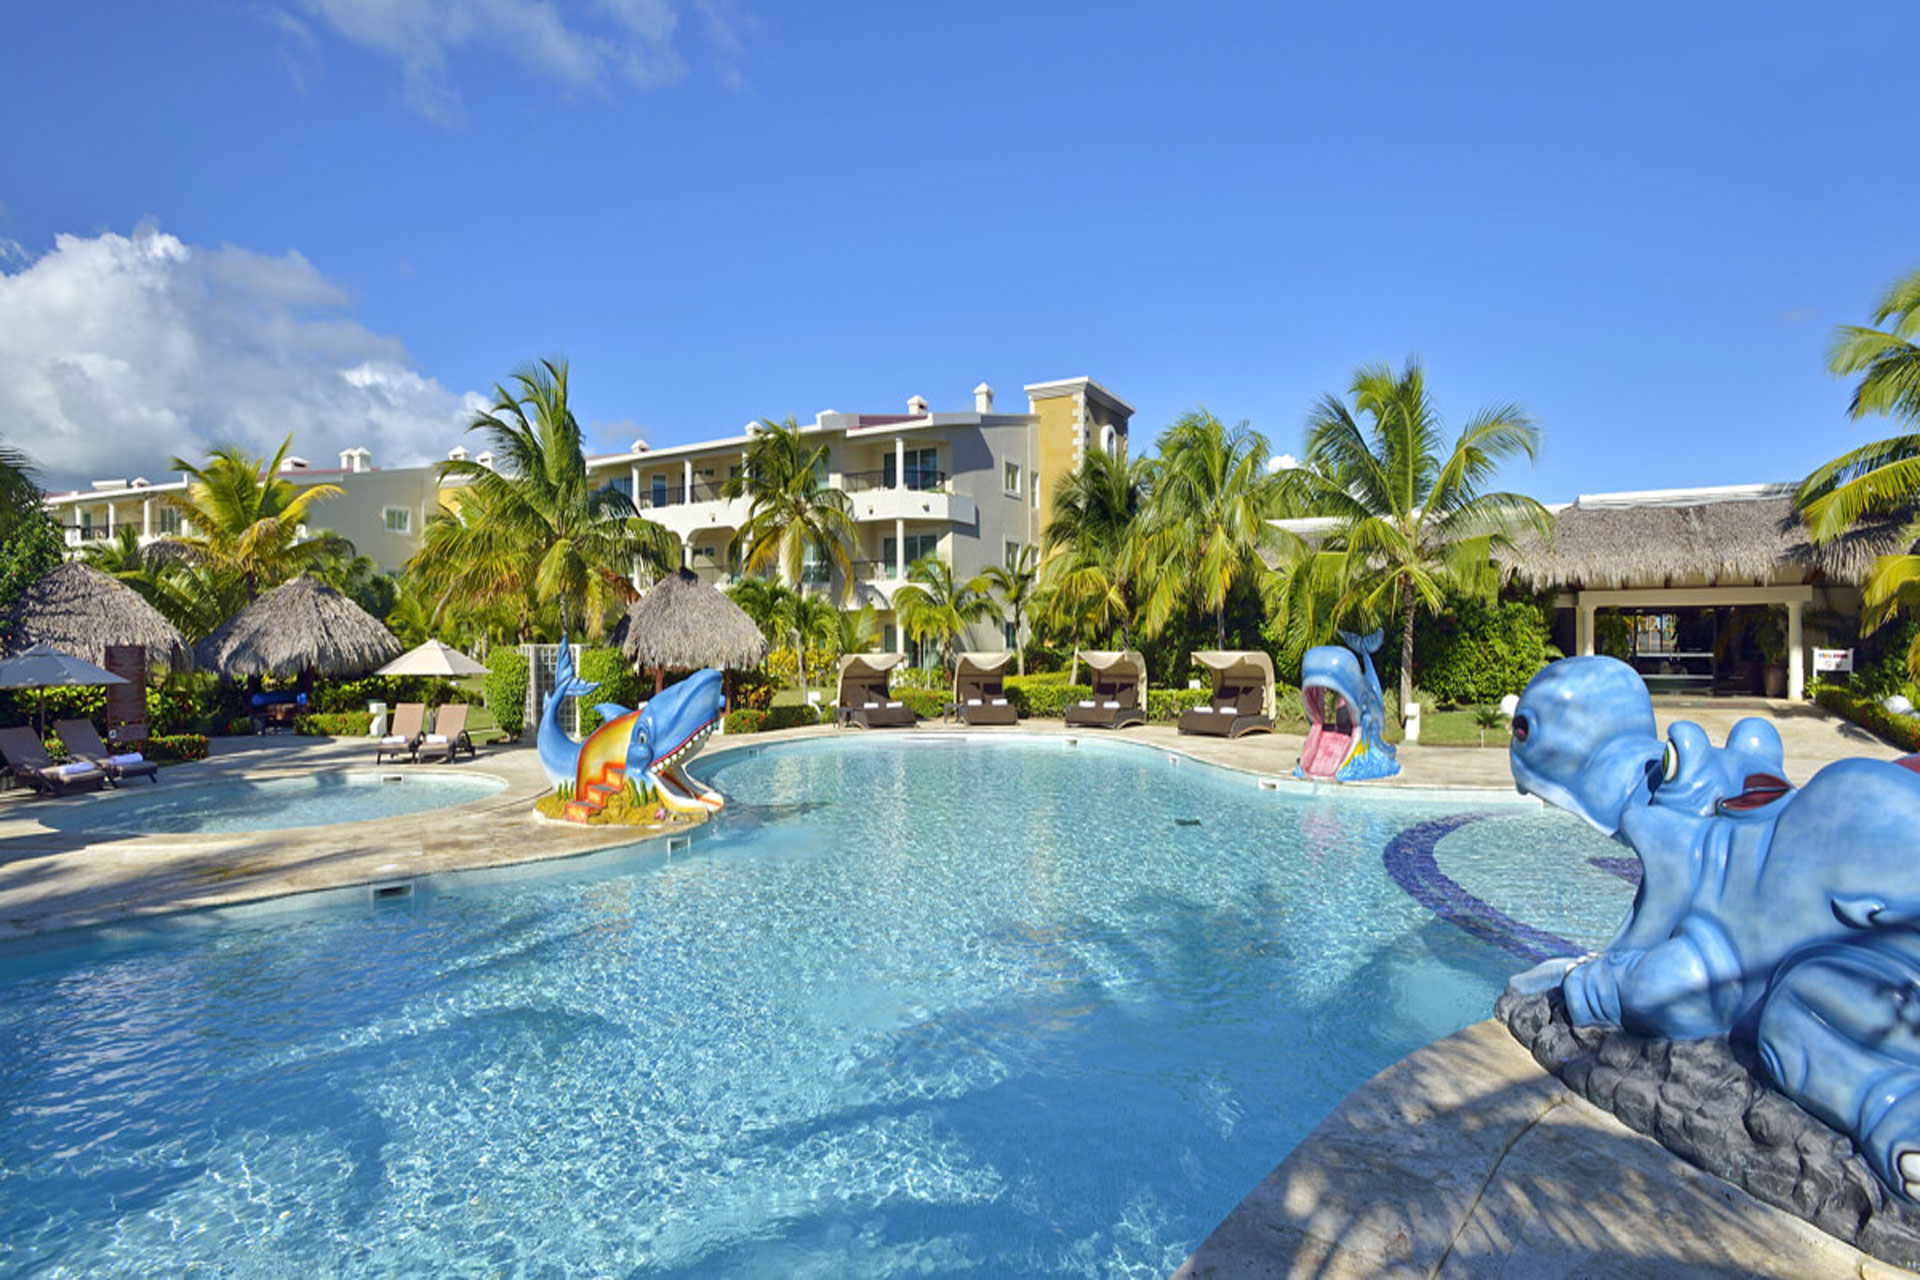 Pool and children's slides at Paradisus Punta Cana Resort